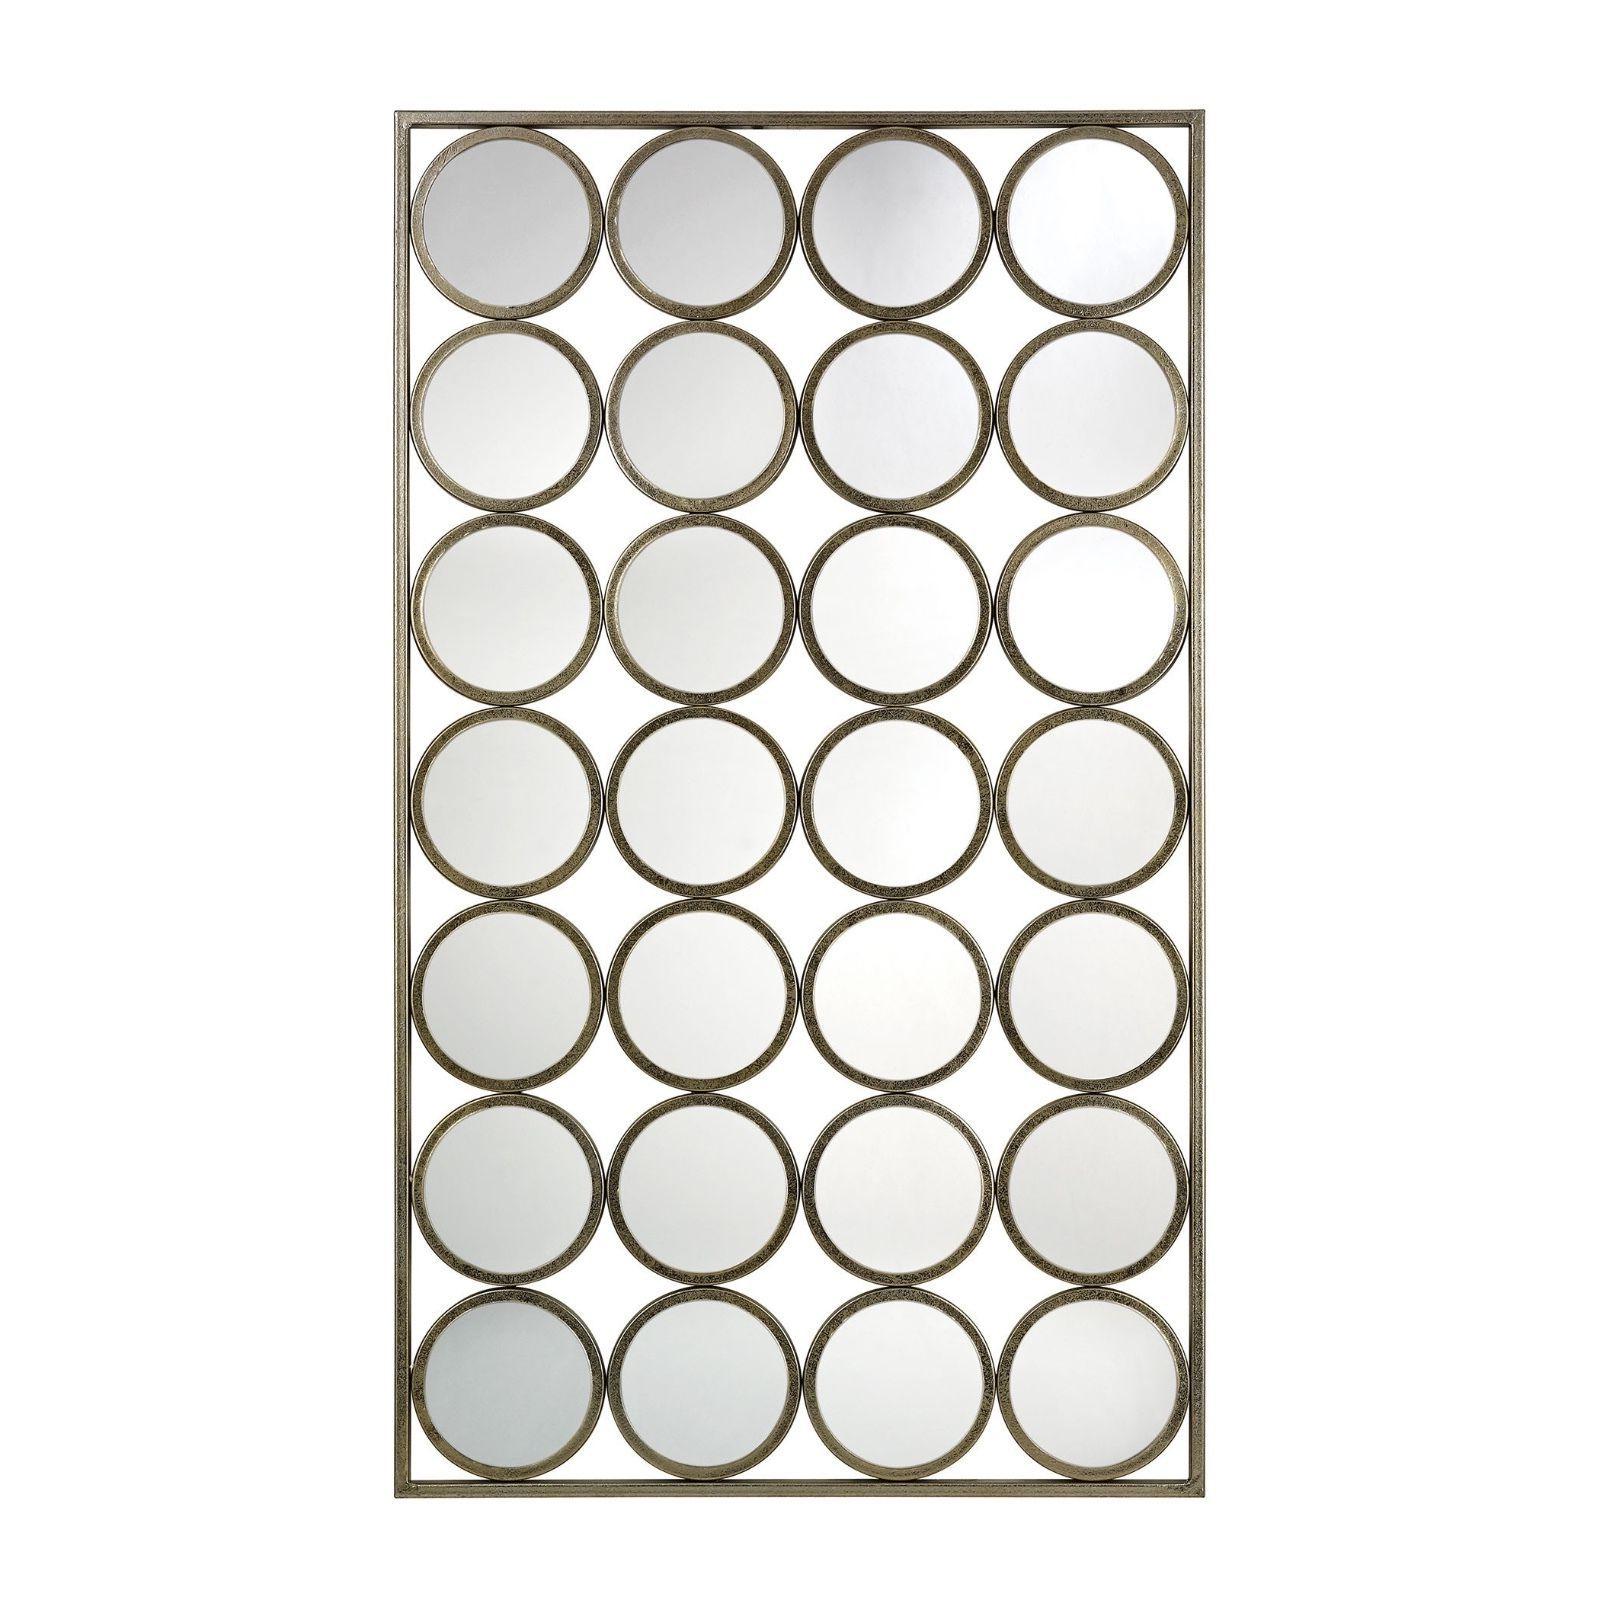 2019 Mid Century Modern Retro Circles Circular And 50 Similar Items Intended For Mid Century Modern Wall Mirrors (Gallery 6 of 20)